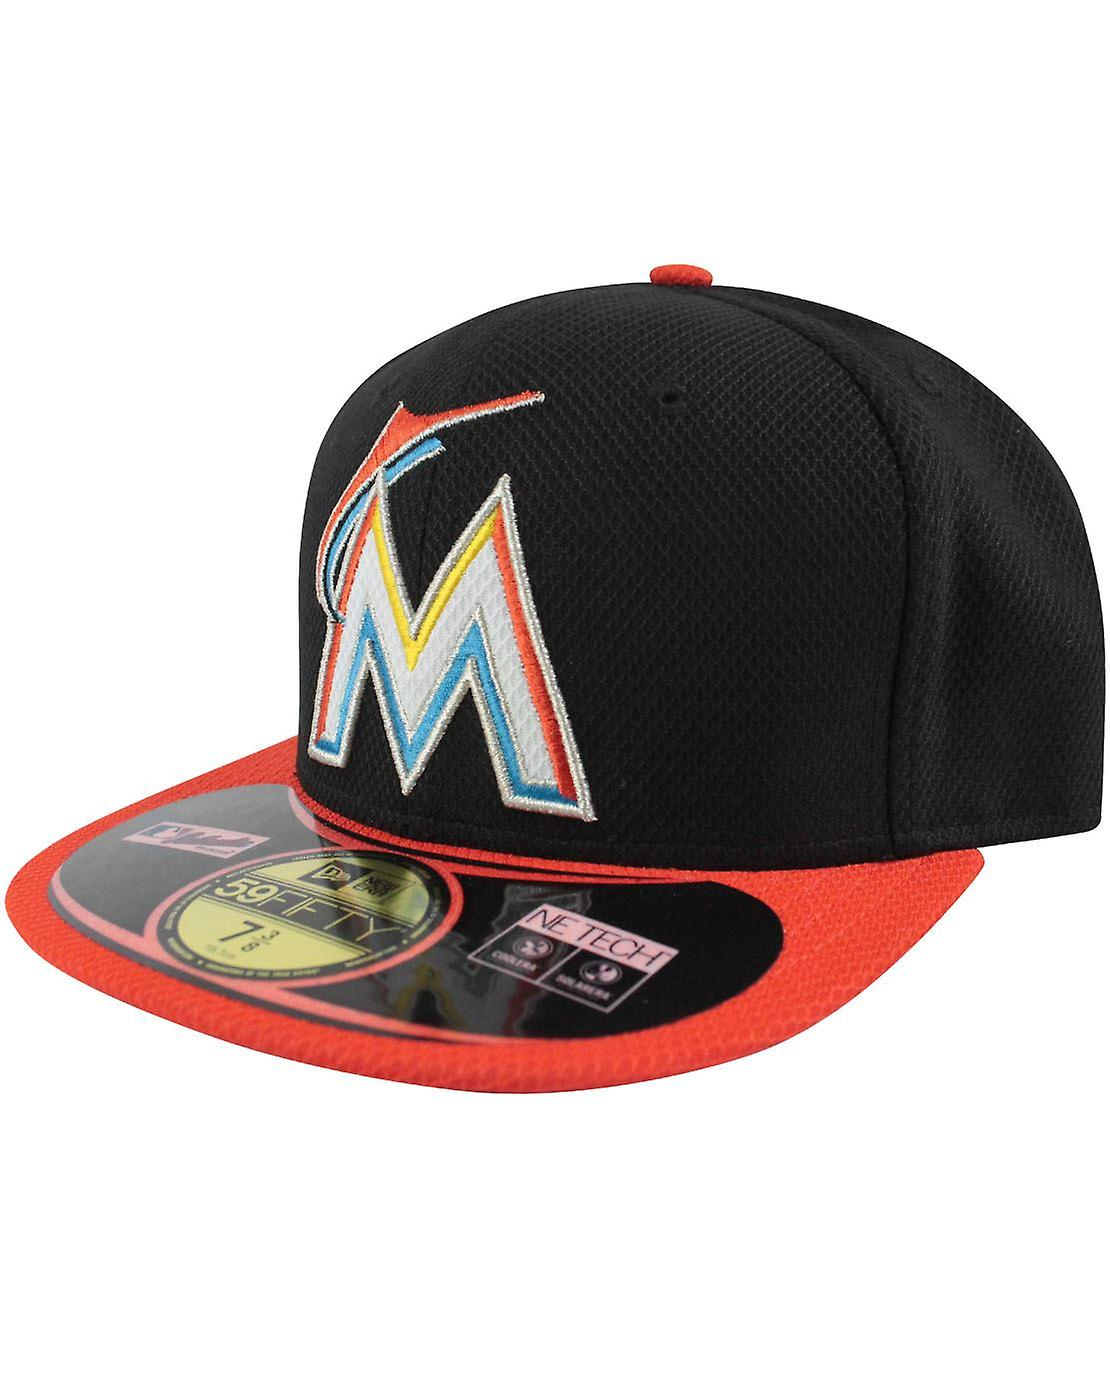 New Era 59Fifty MLB Miami Marlins Cap Black